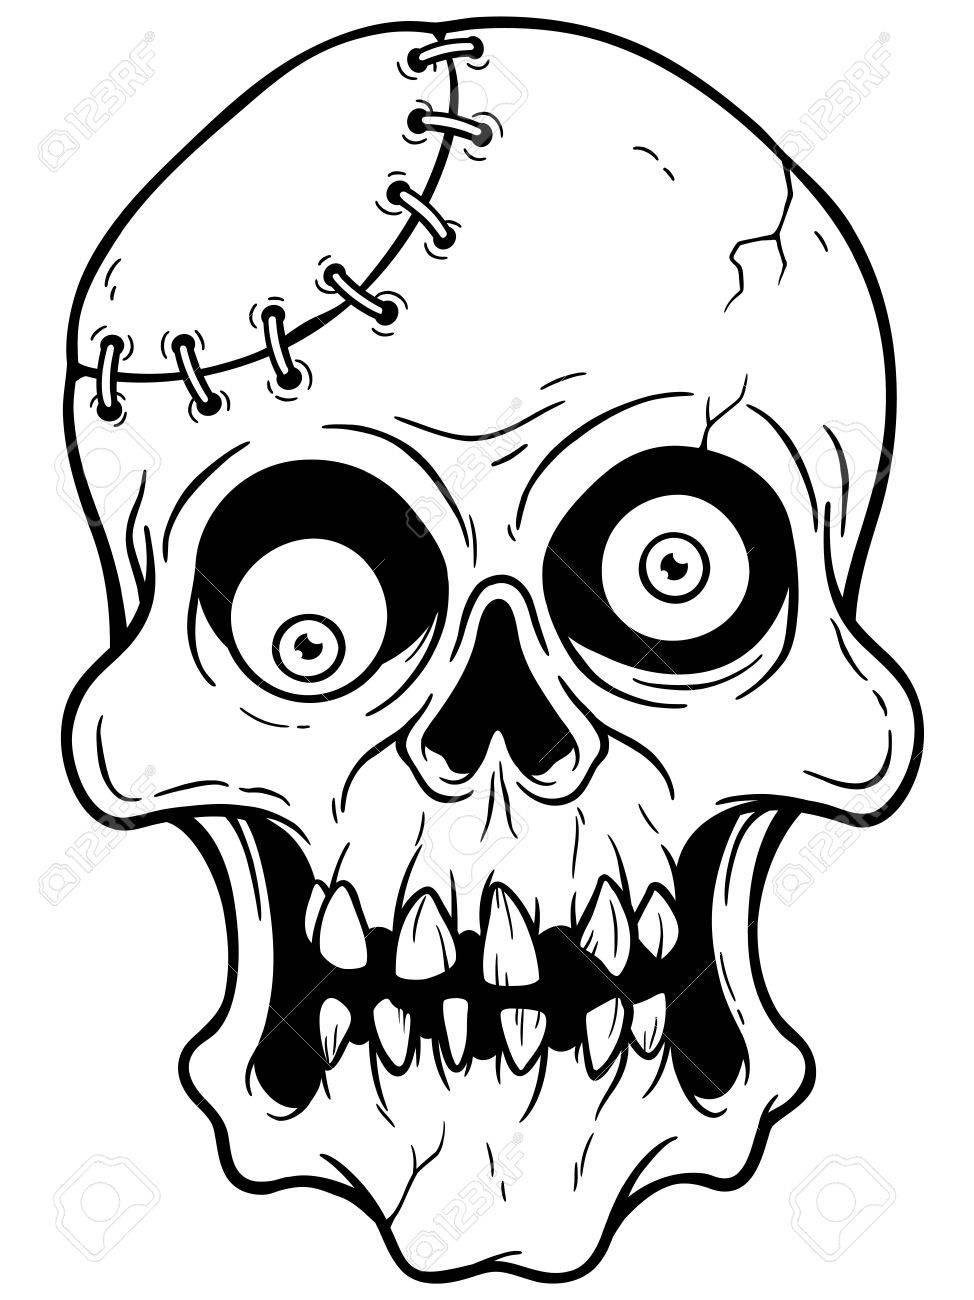 974x1300 Vector Illustration Of Cartoon Zombie Face Royalty Free Cliparts